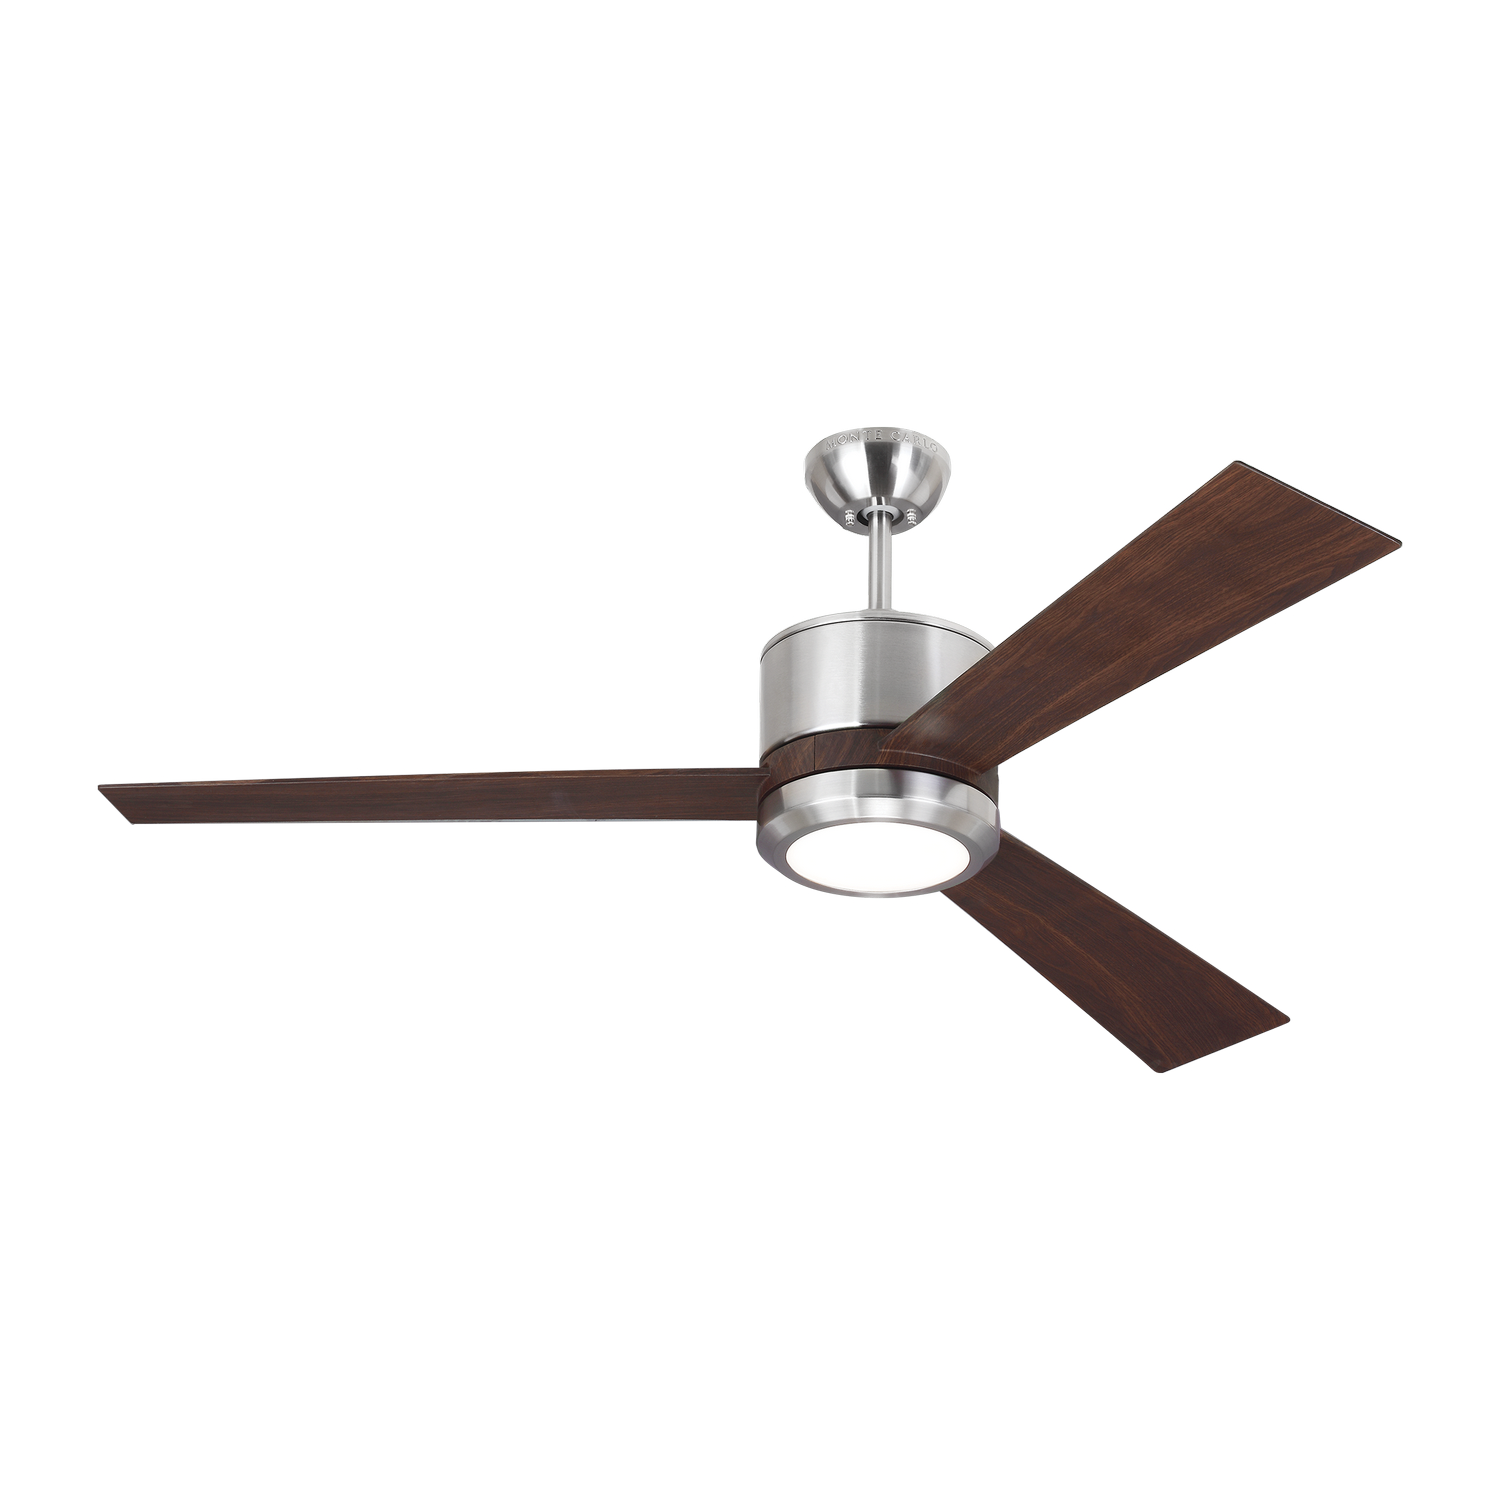 52 inchCeiling Fan from the Vision collection by Monte Carlo 3VNR52BSD V1